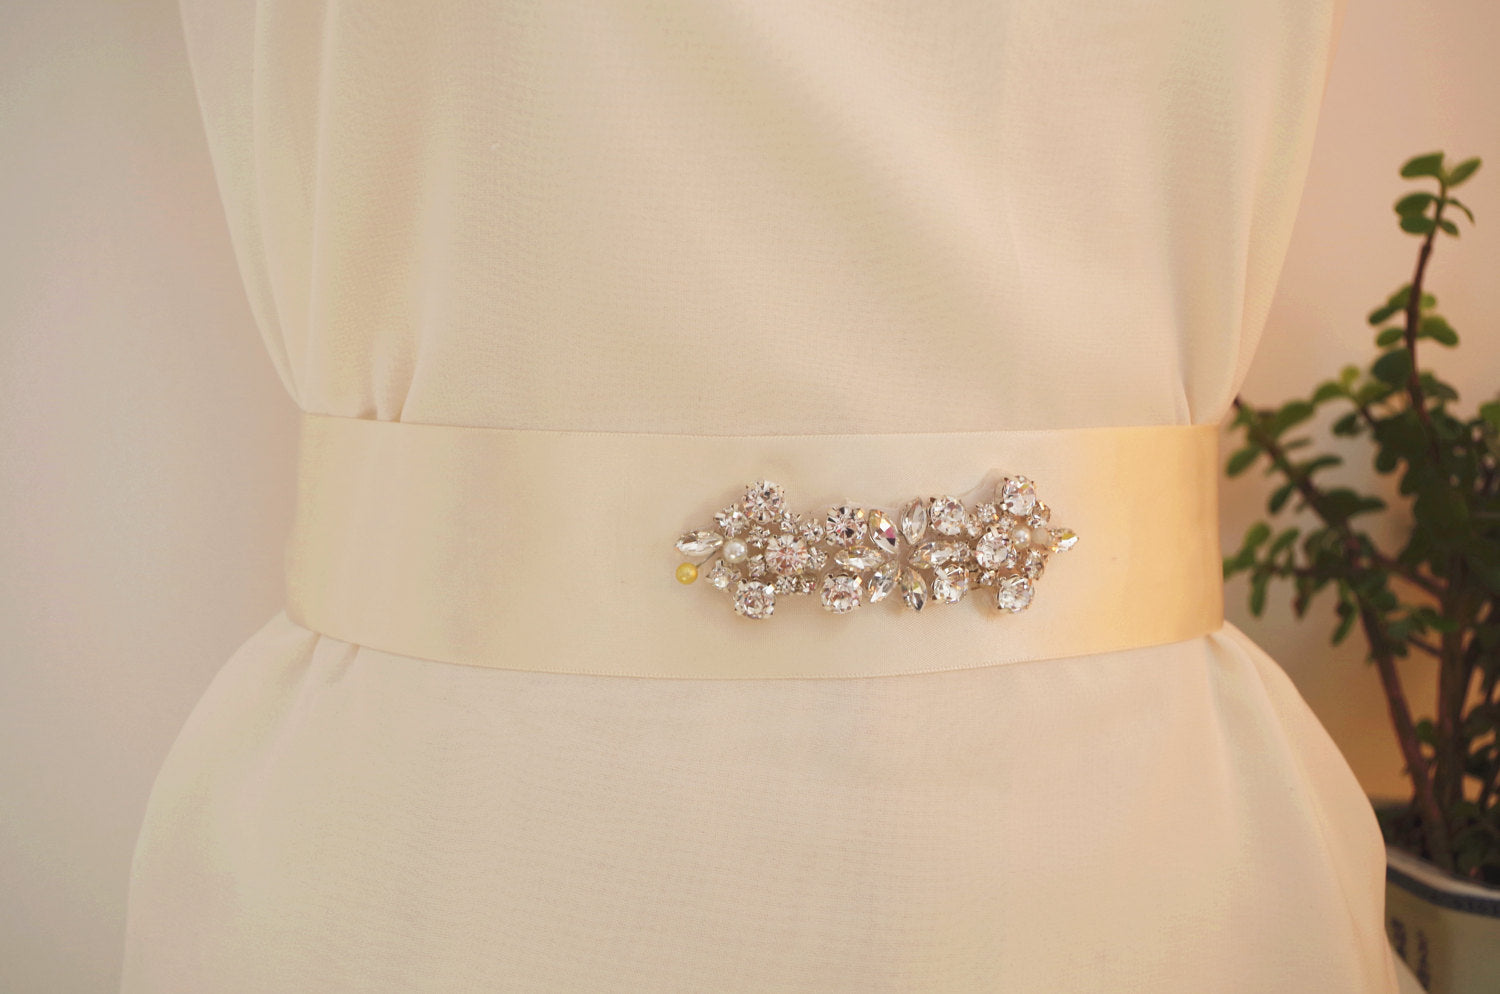 Clear Rhinestone Sash belt applique, bridal crystal floral sash applique, bridal sash belt, rose gold crystal headband, bridal headpiece